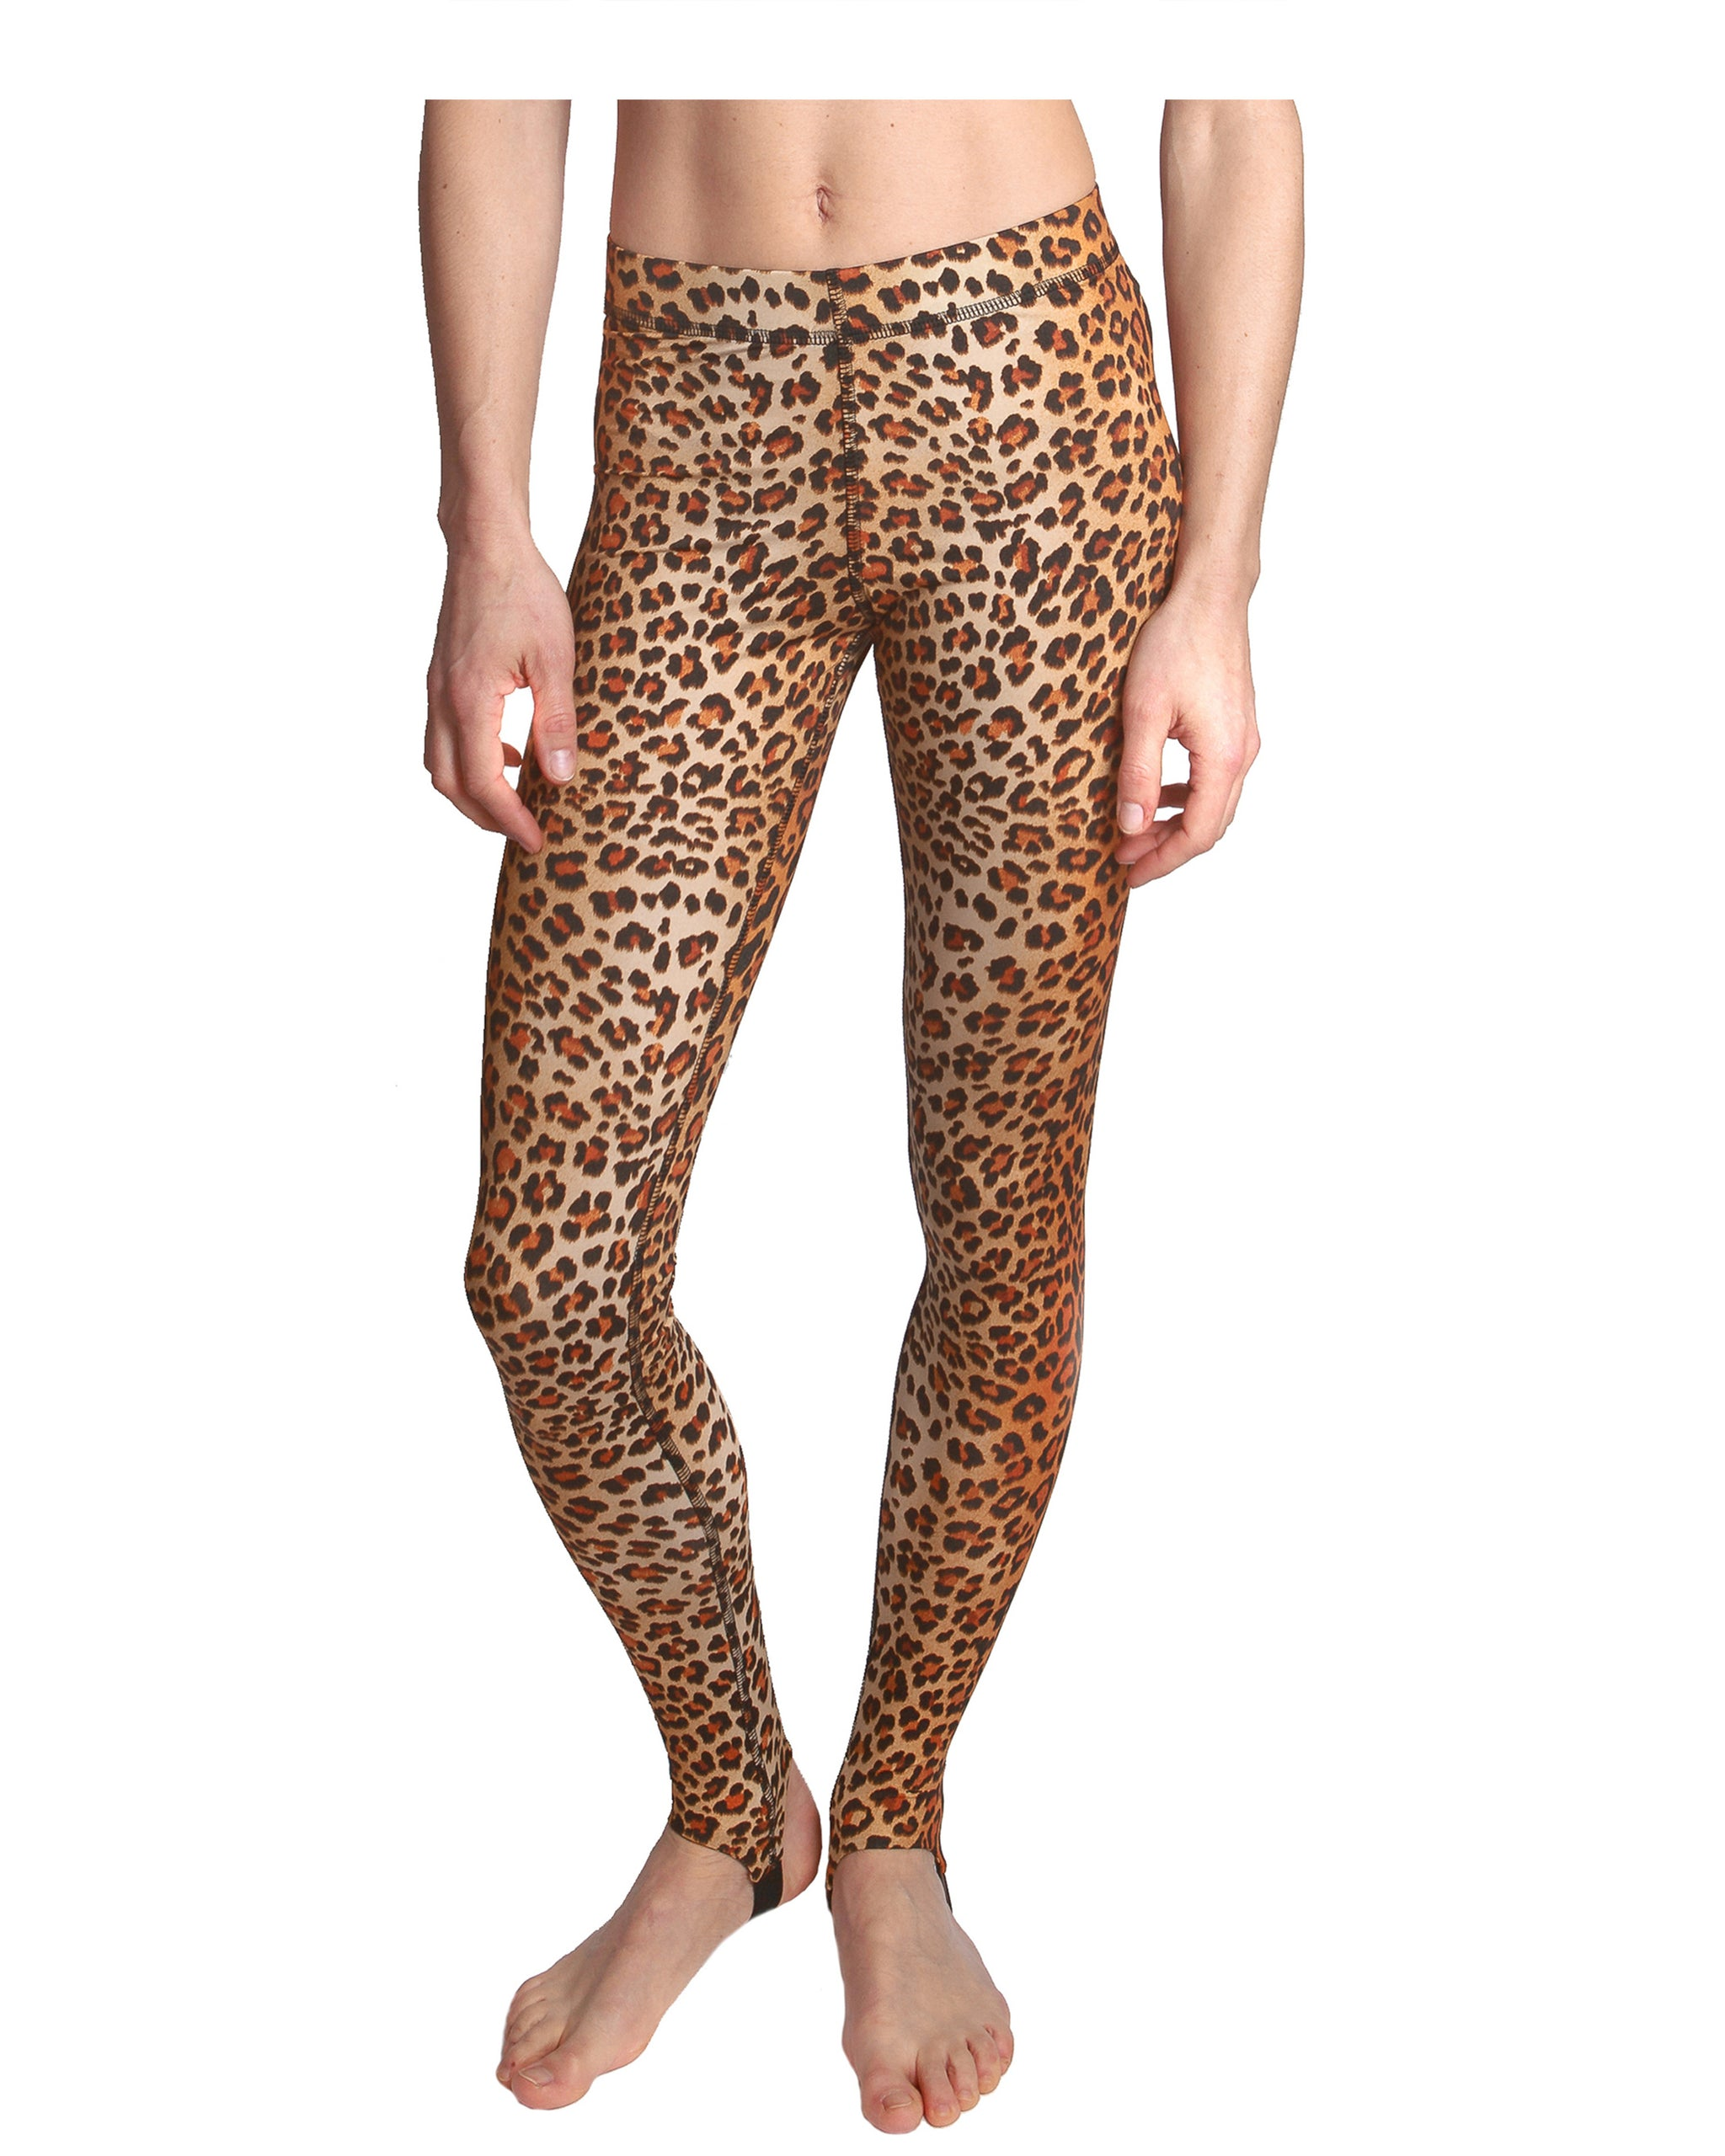 Leopard Print Gym Leggings Printed Tights For Workouts Like Yoga Running Cycling Or Swimming Premium Quality Italian Fabric By Lprd